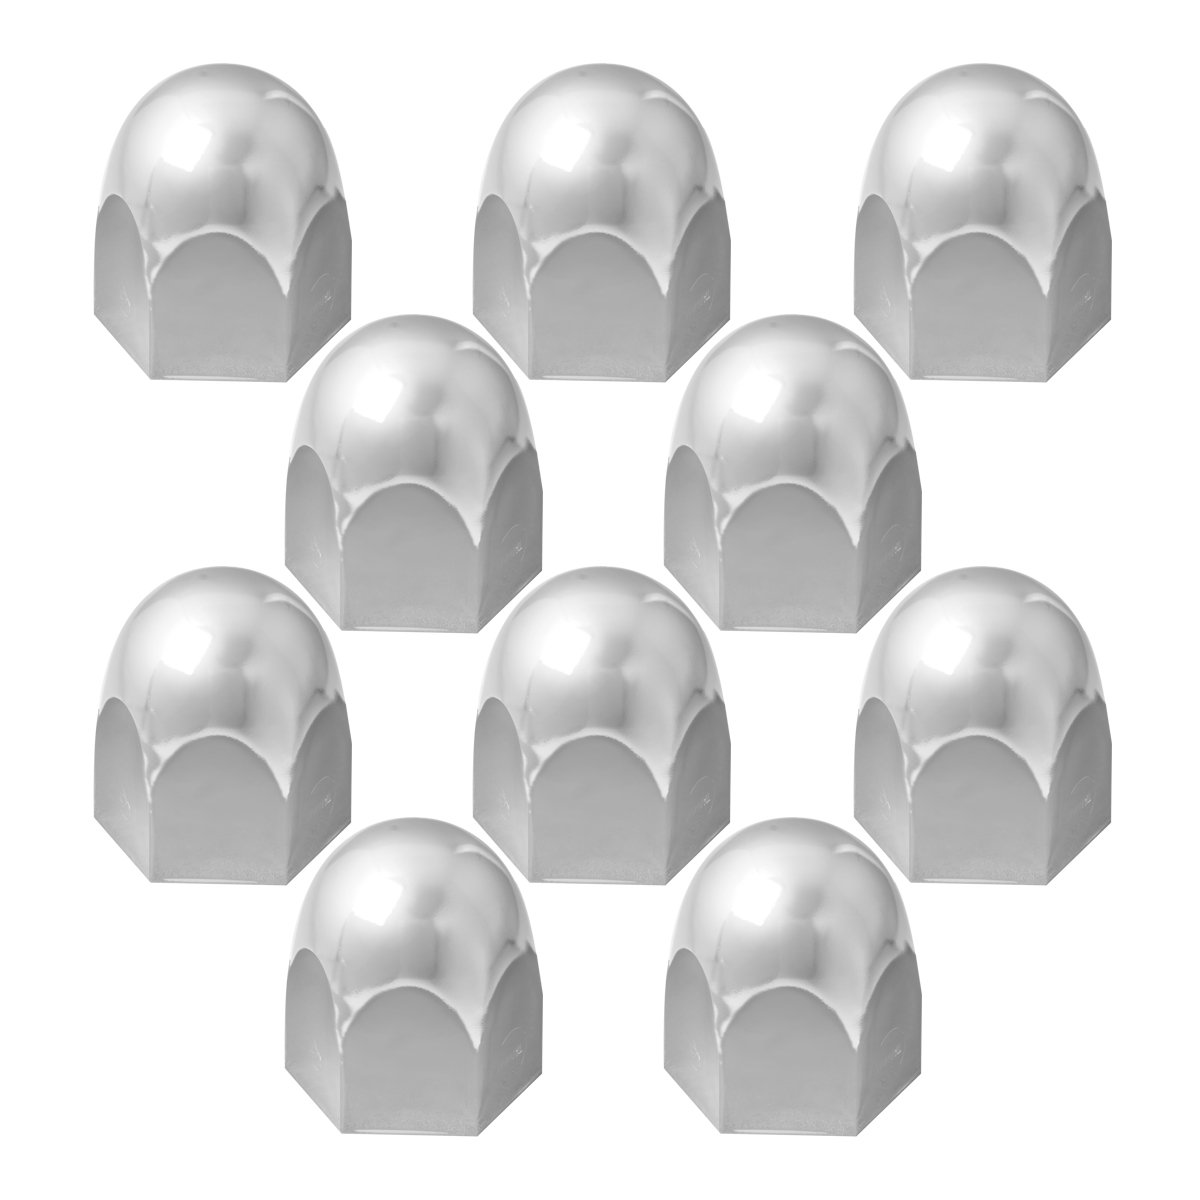 Grand General 10265SP Chrome 33mm x 3 Steel Bullet Push-On Nut Cover with Flange